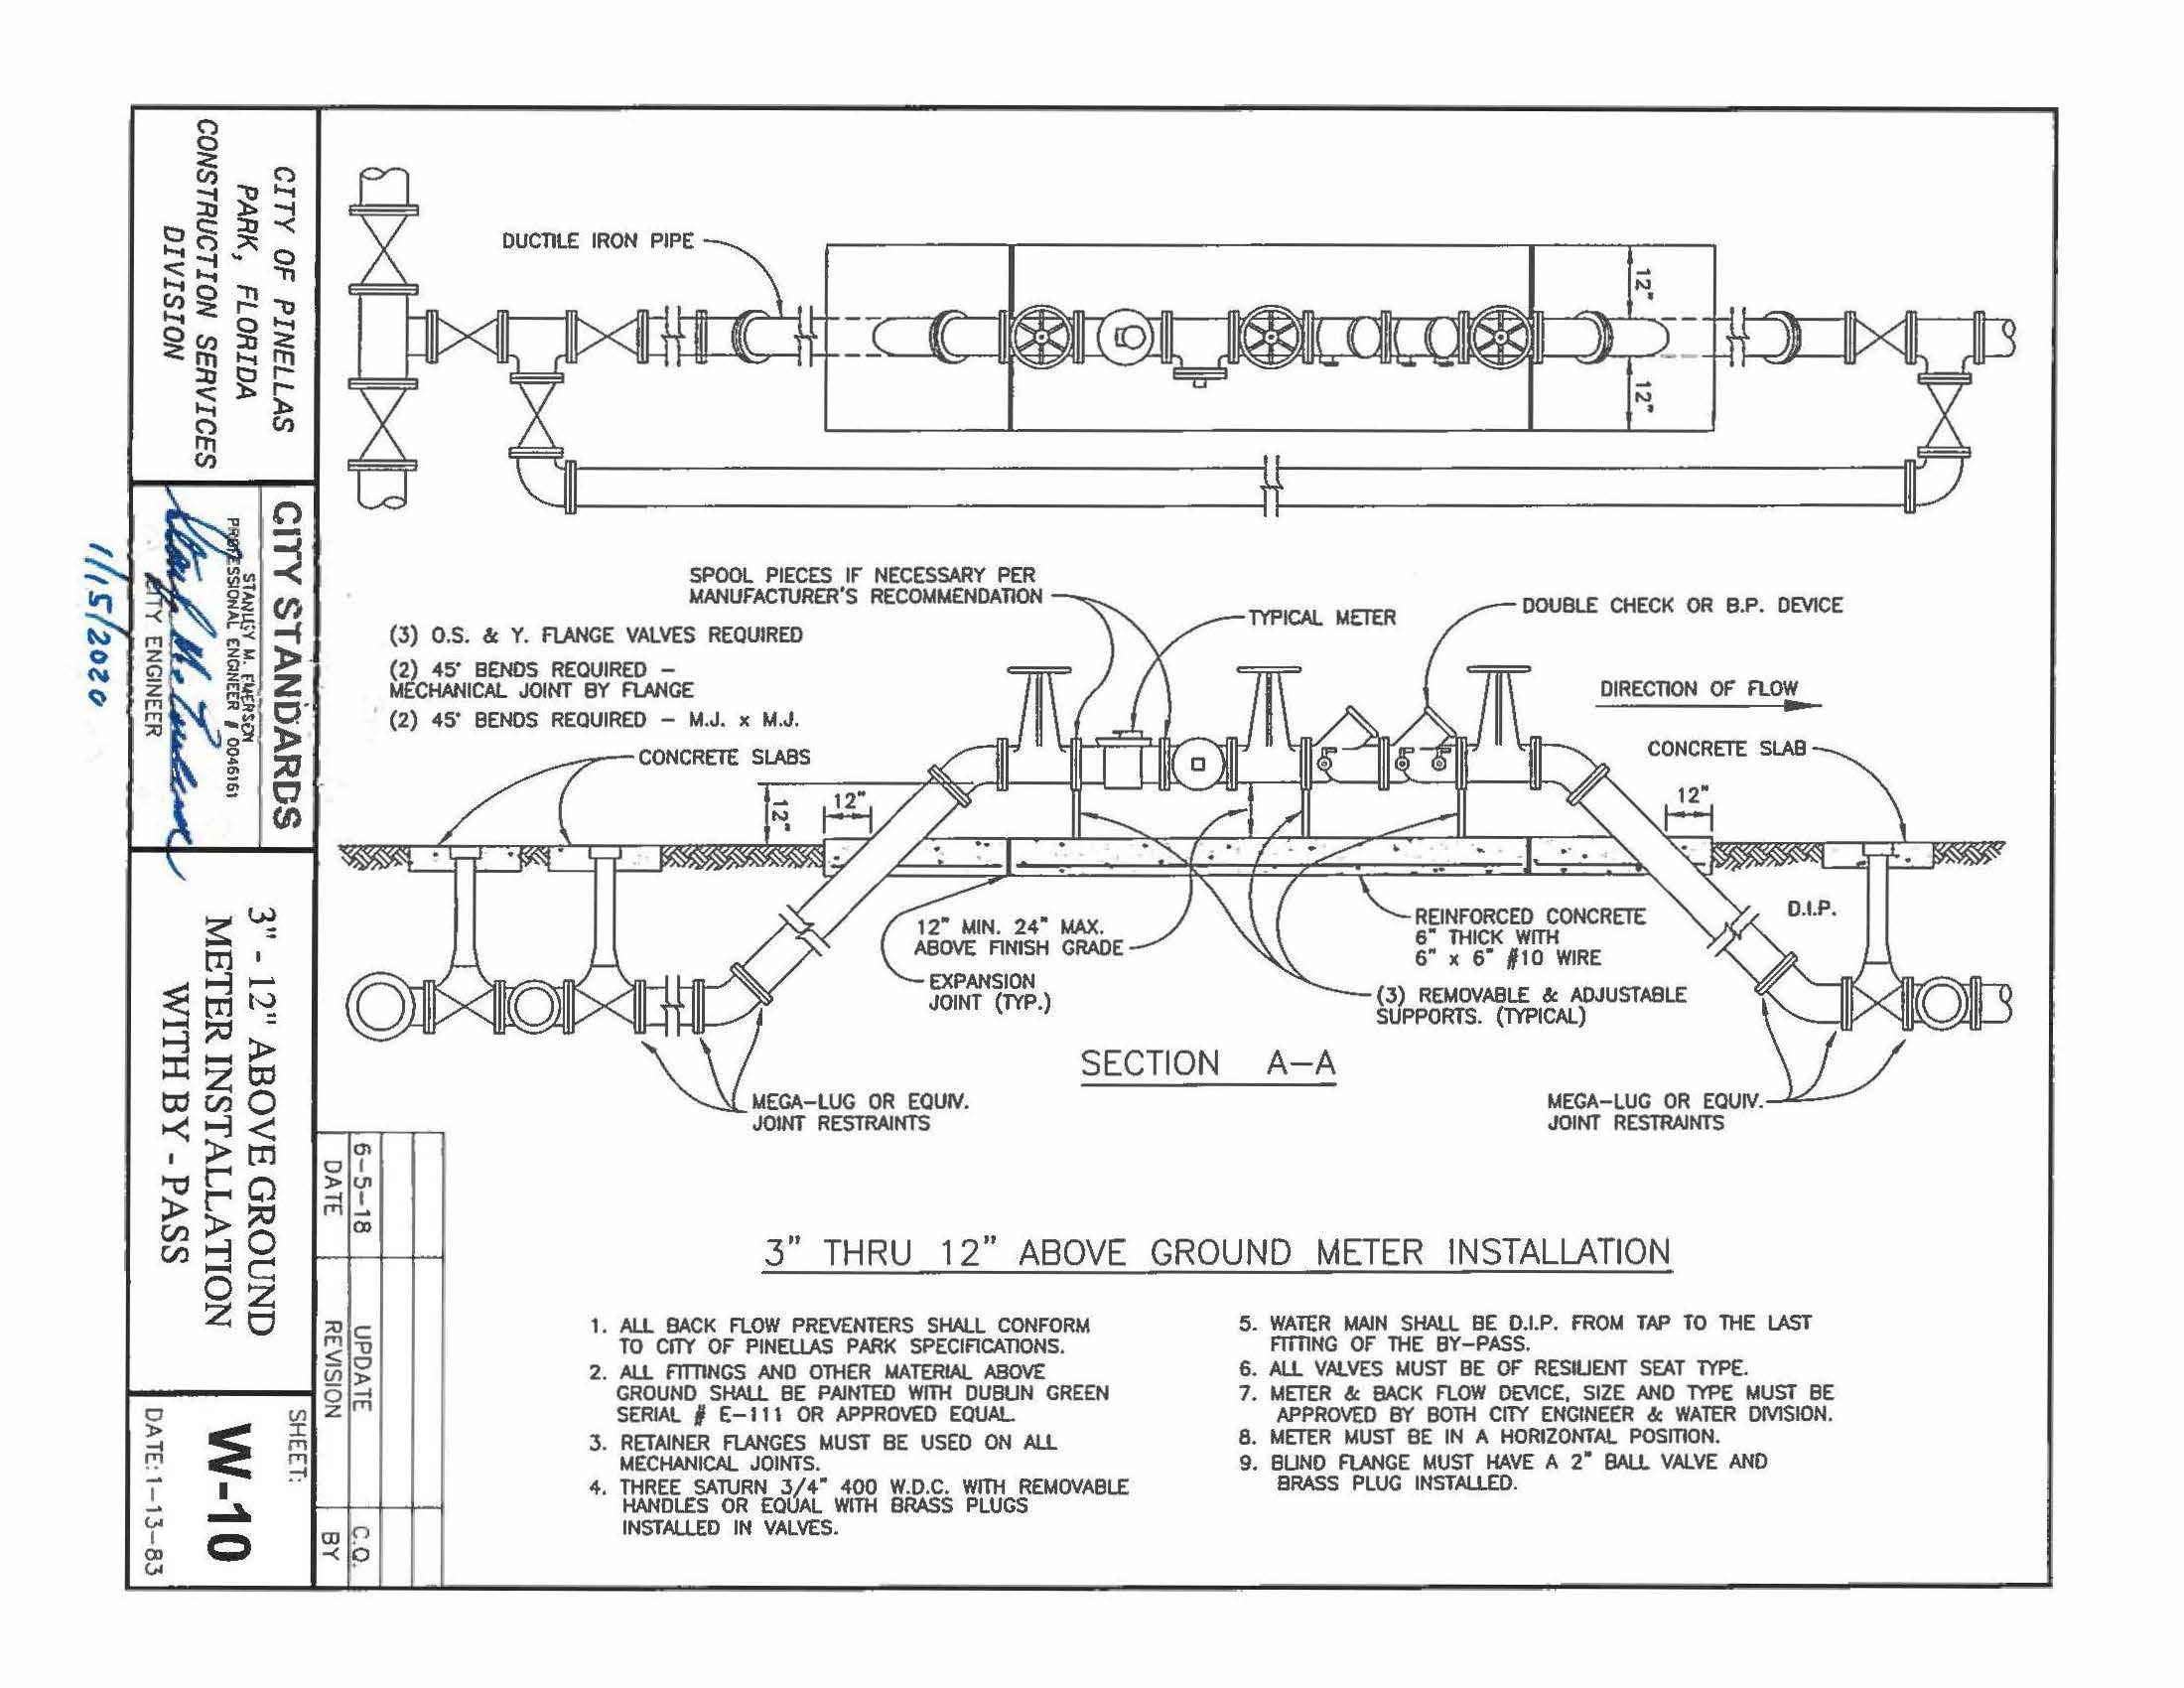 City of Pinellas Park Engineering Manual.ADA_Page_133